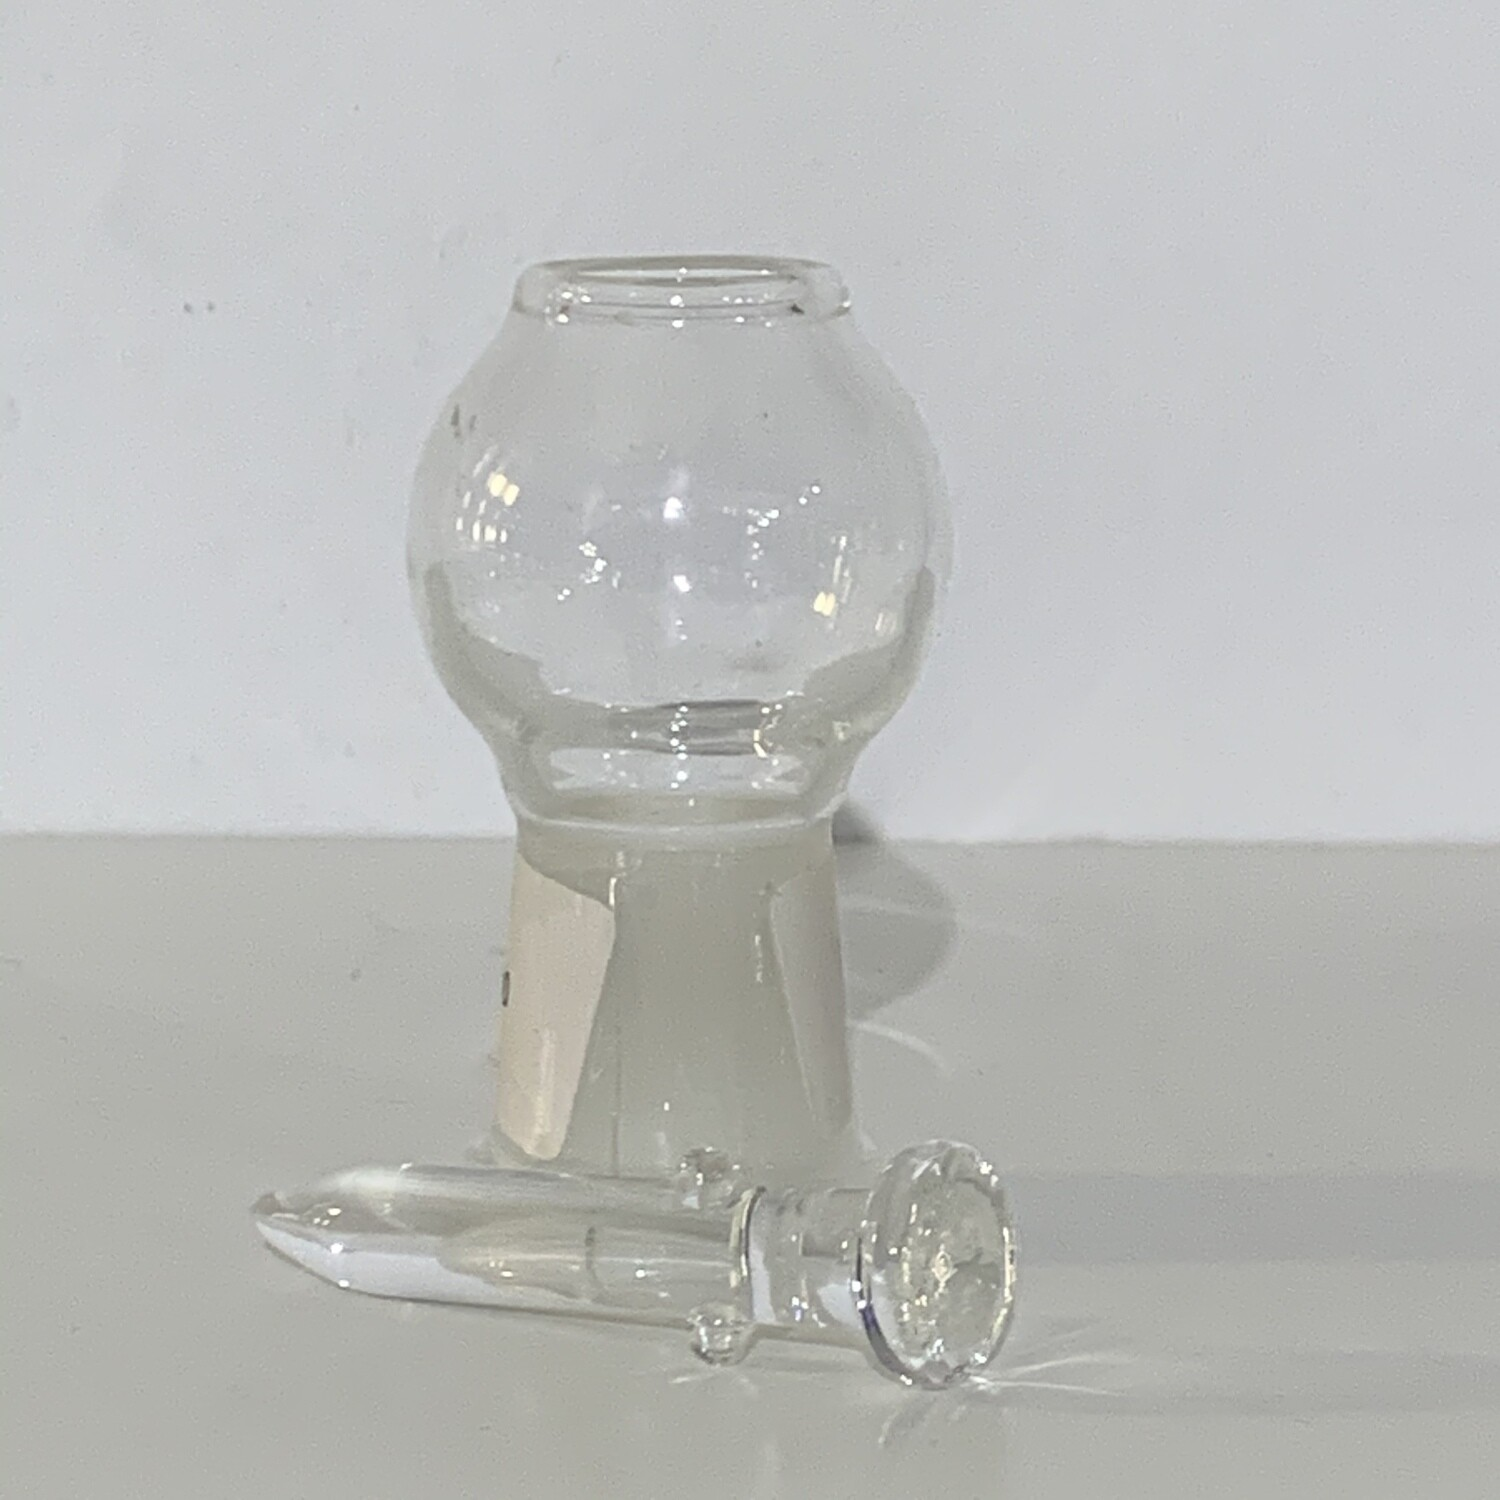 Glass Dome And Nail 18mm